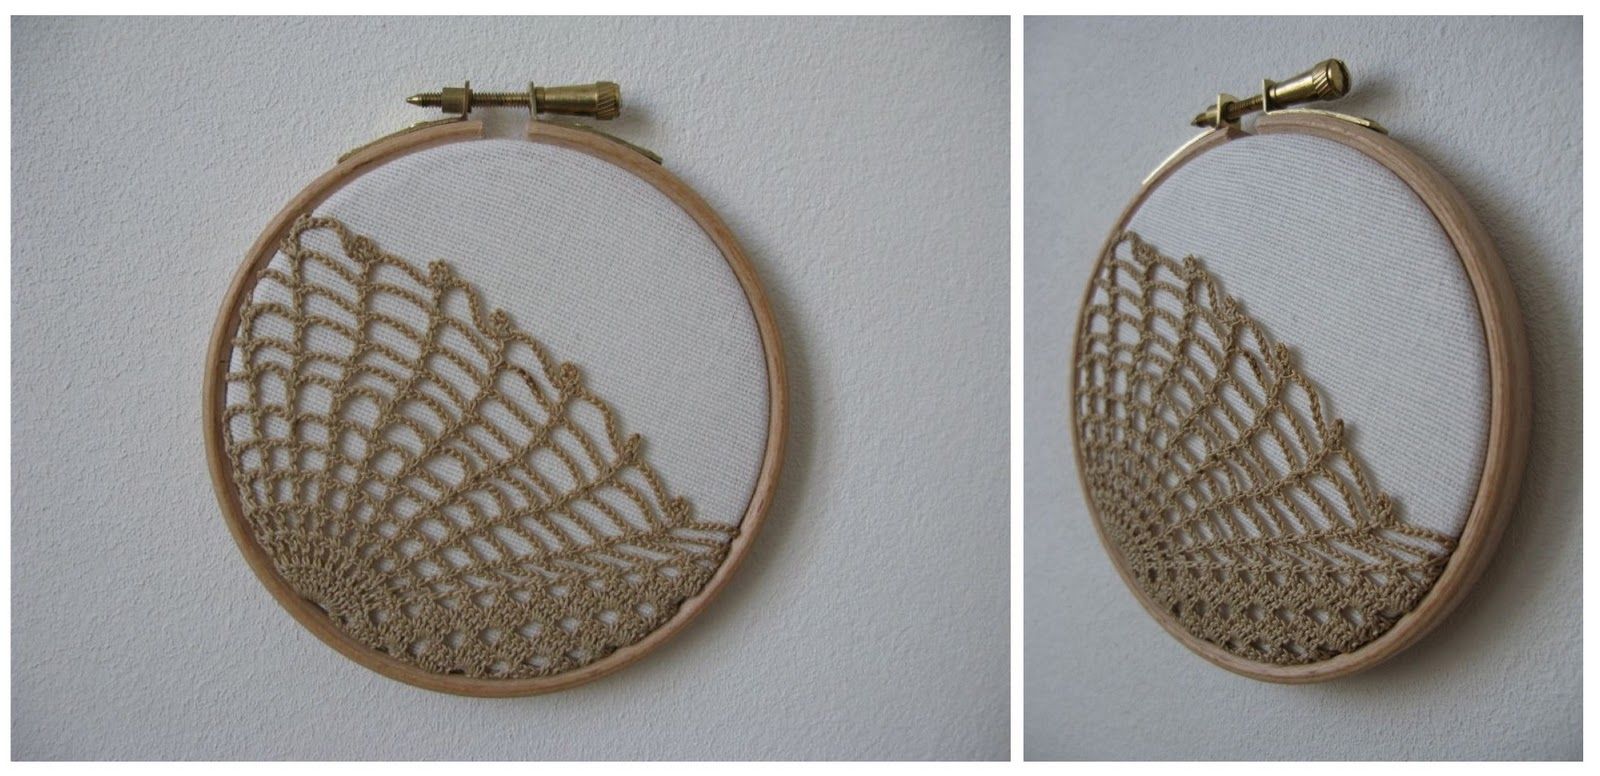 E17craft: Crochet Wall Art & Lavender Sachets With Regard To Best And Newest Crochet Wall Art (View 10 of 20)